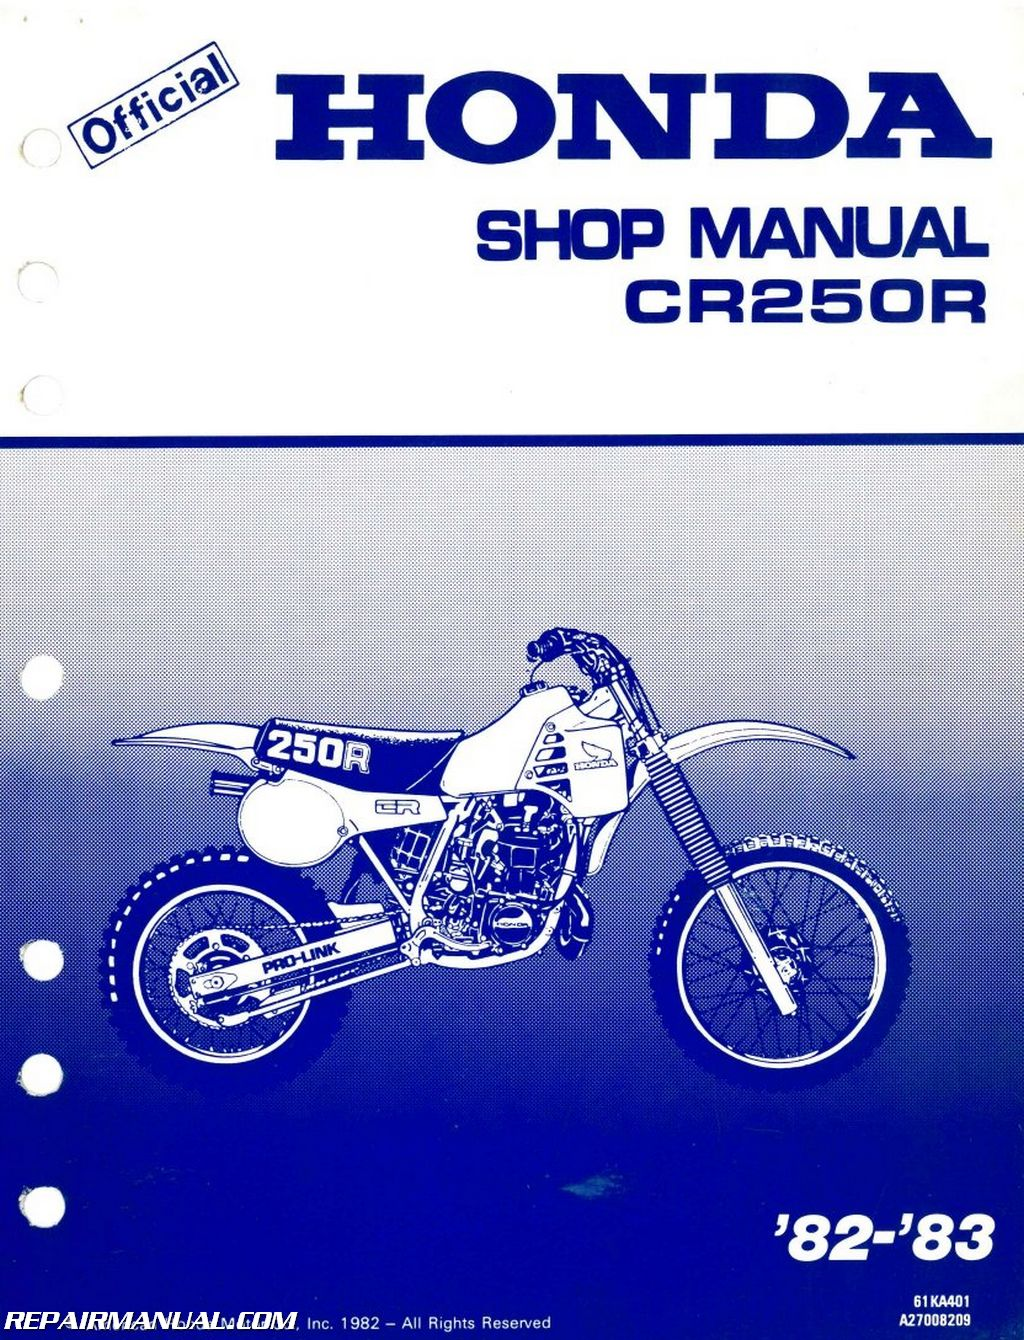 1982 1983 honda cr250r service manual repair manuals online 1982 1983 honda cr250r service manual